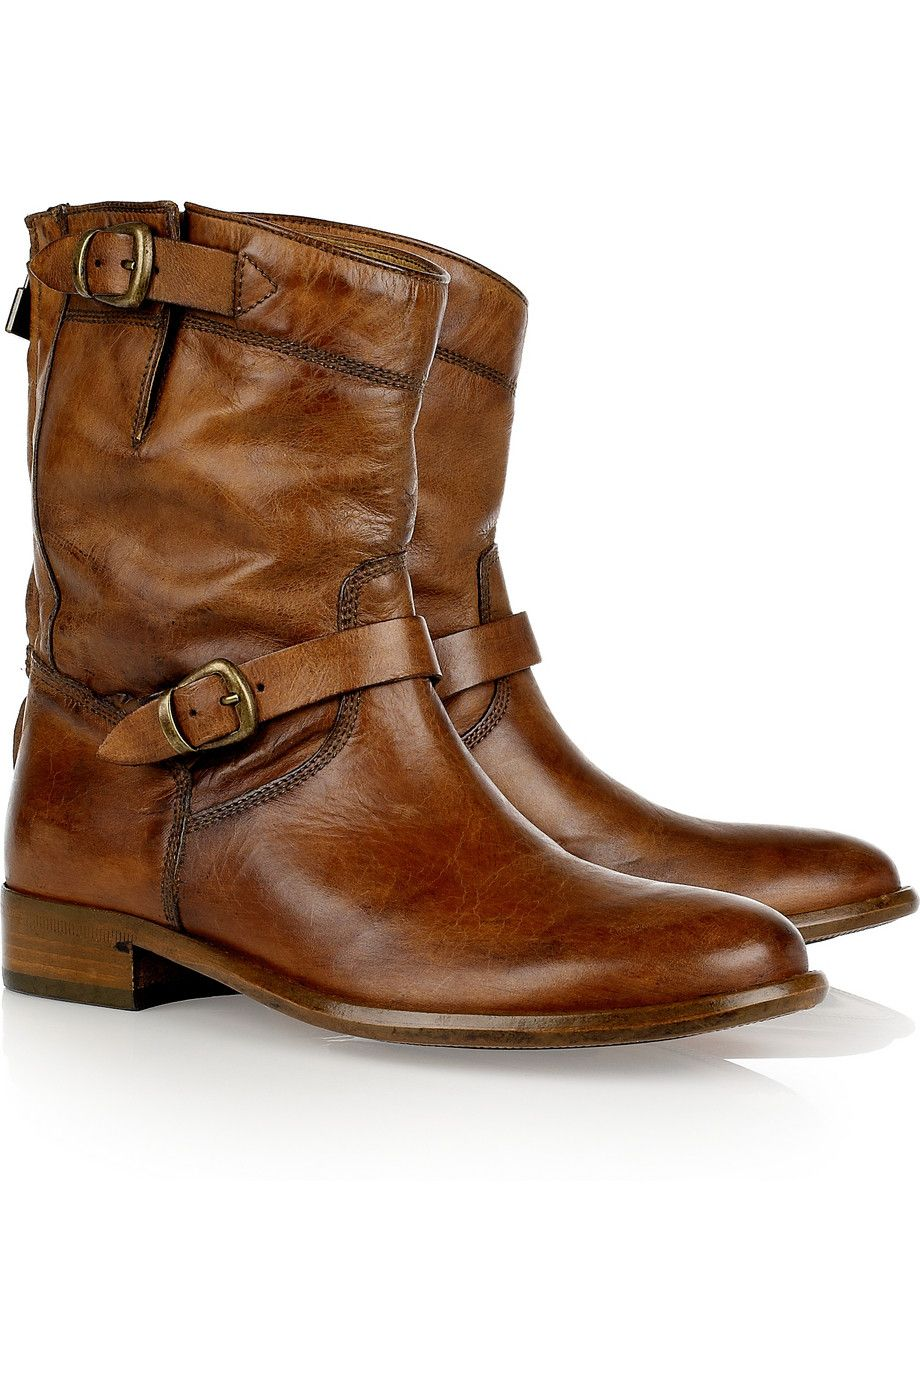 sightseeing parties walking work best comfortable ankle comforter boots travel fashion casual for wear booties accessories